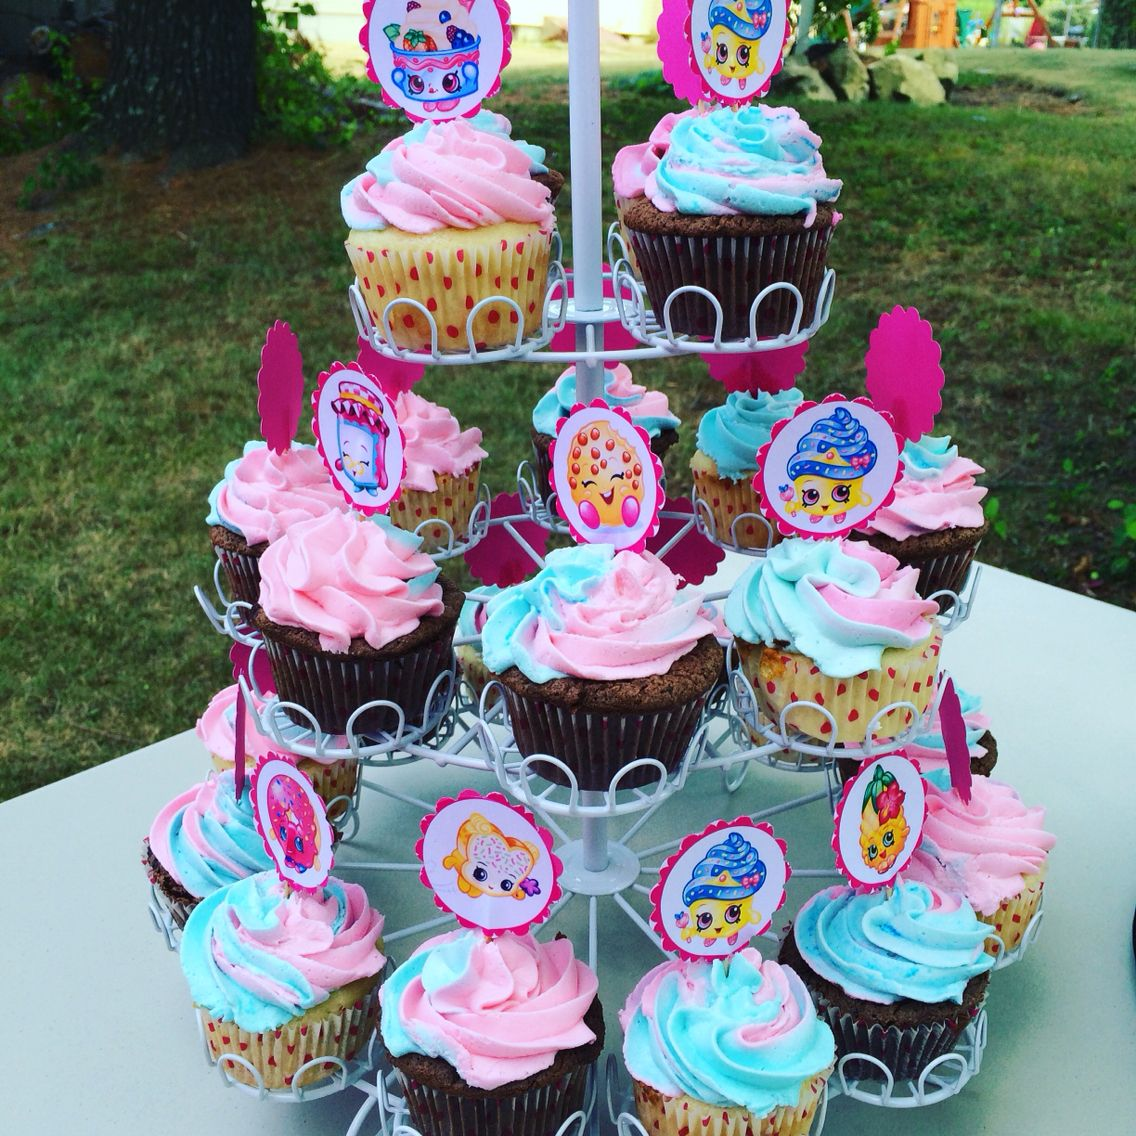 Shopkin Cupcakes #SugarLoveEvents